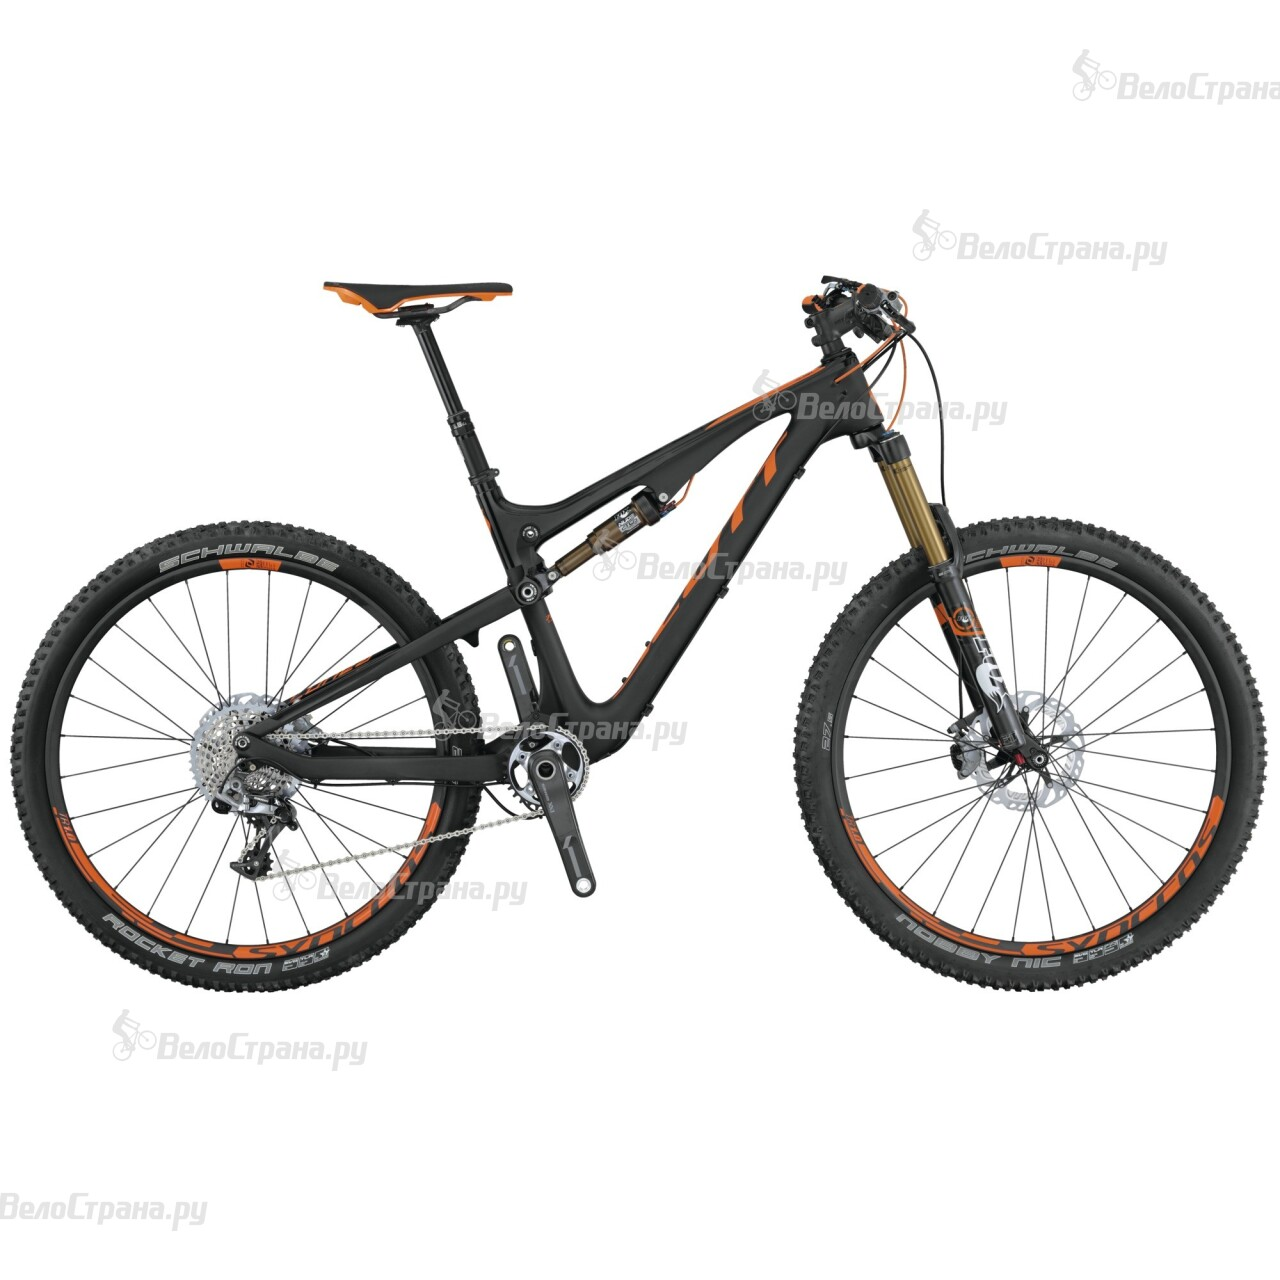 Велосипед Scott Genius 700 Tuned (2015) велосипед scott contessa genius 700 2015